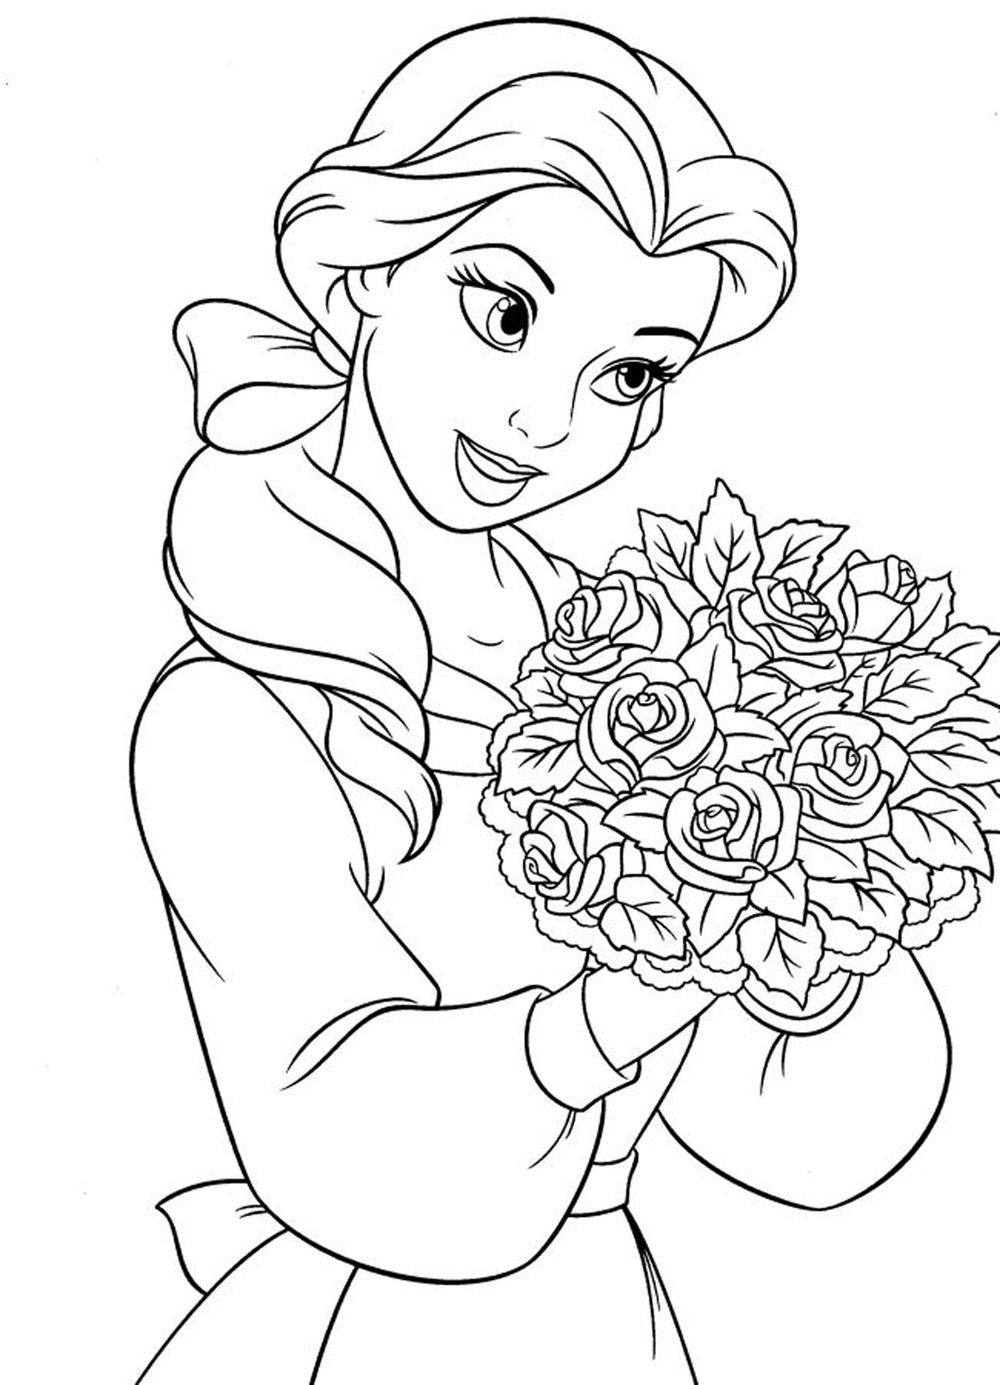 Coloring book disney princess - Disney princess coloring book